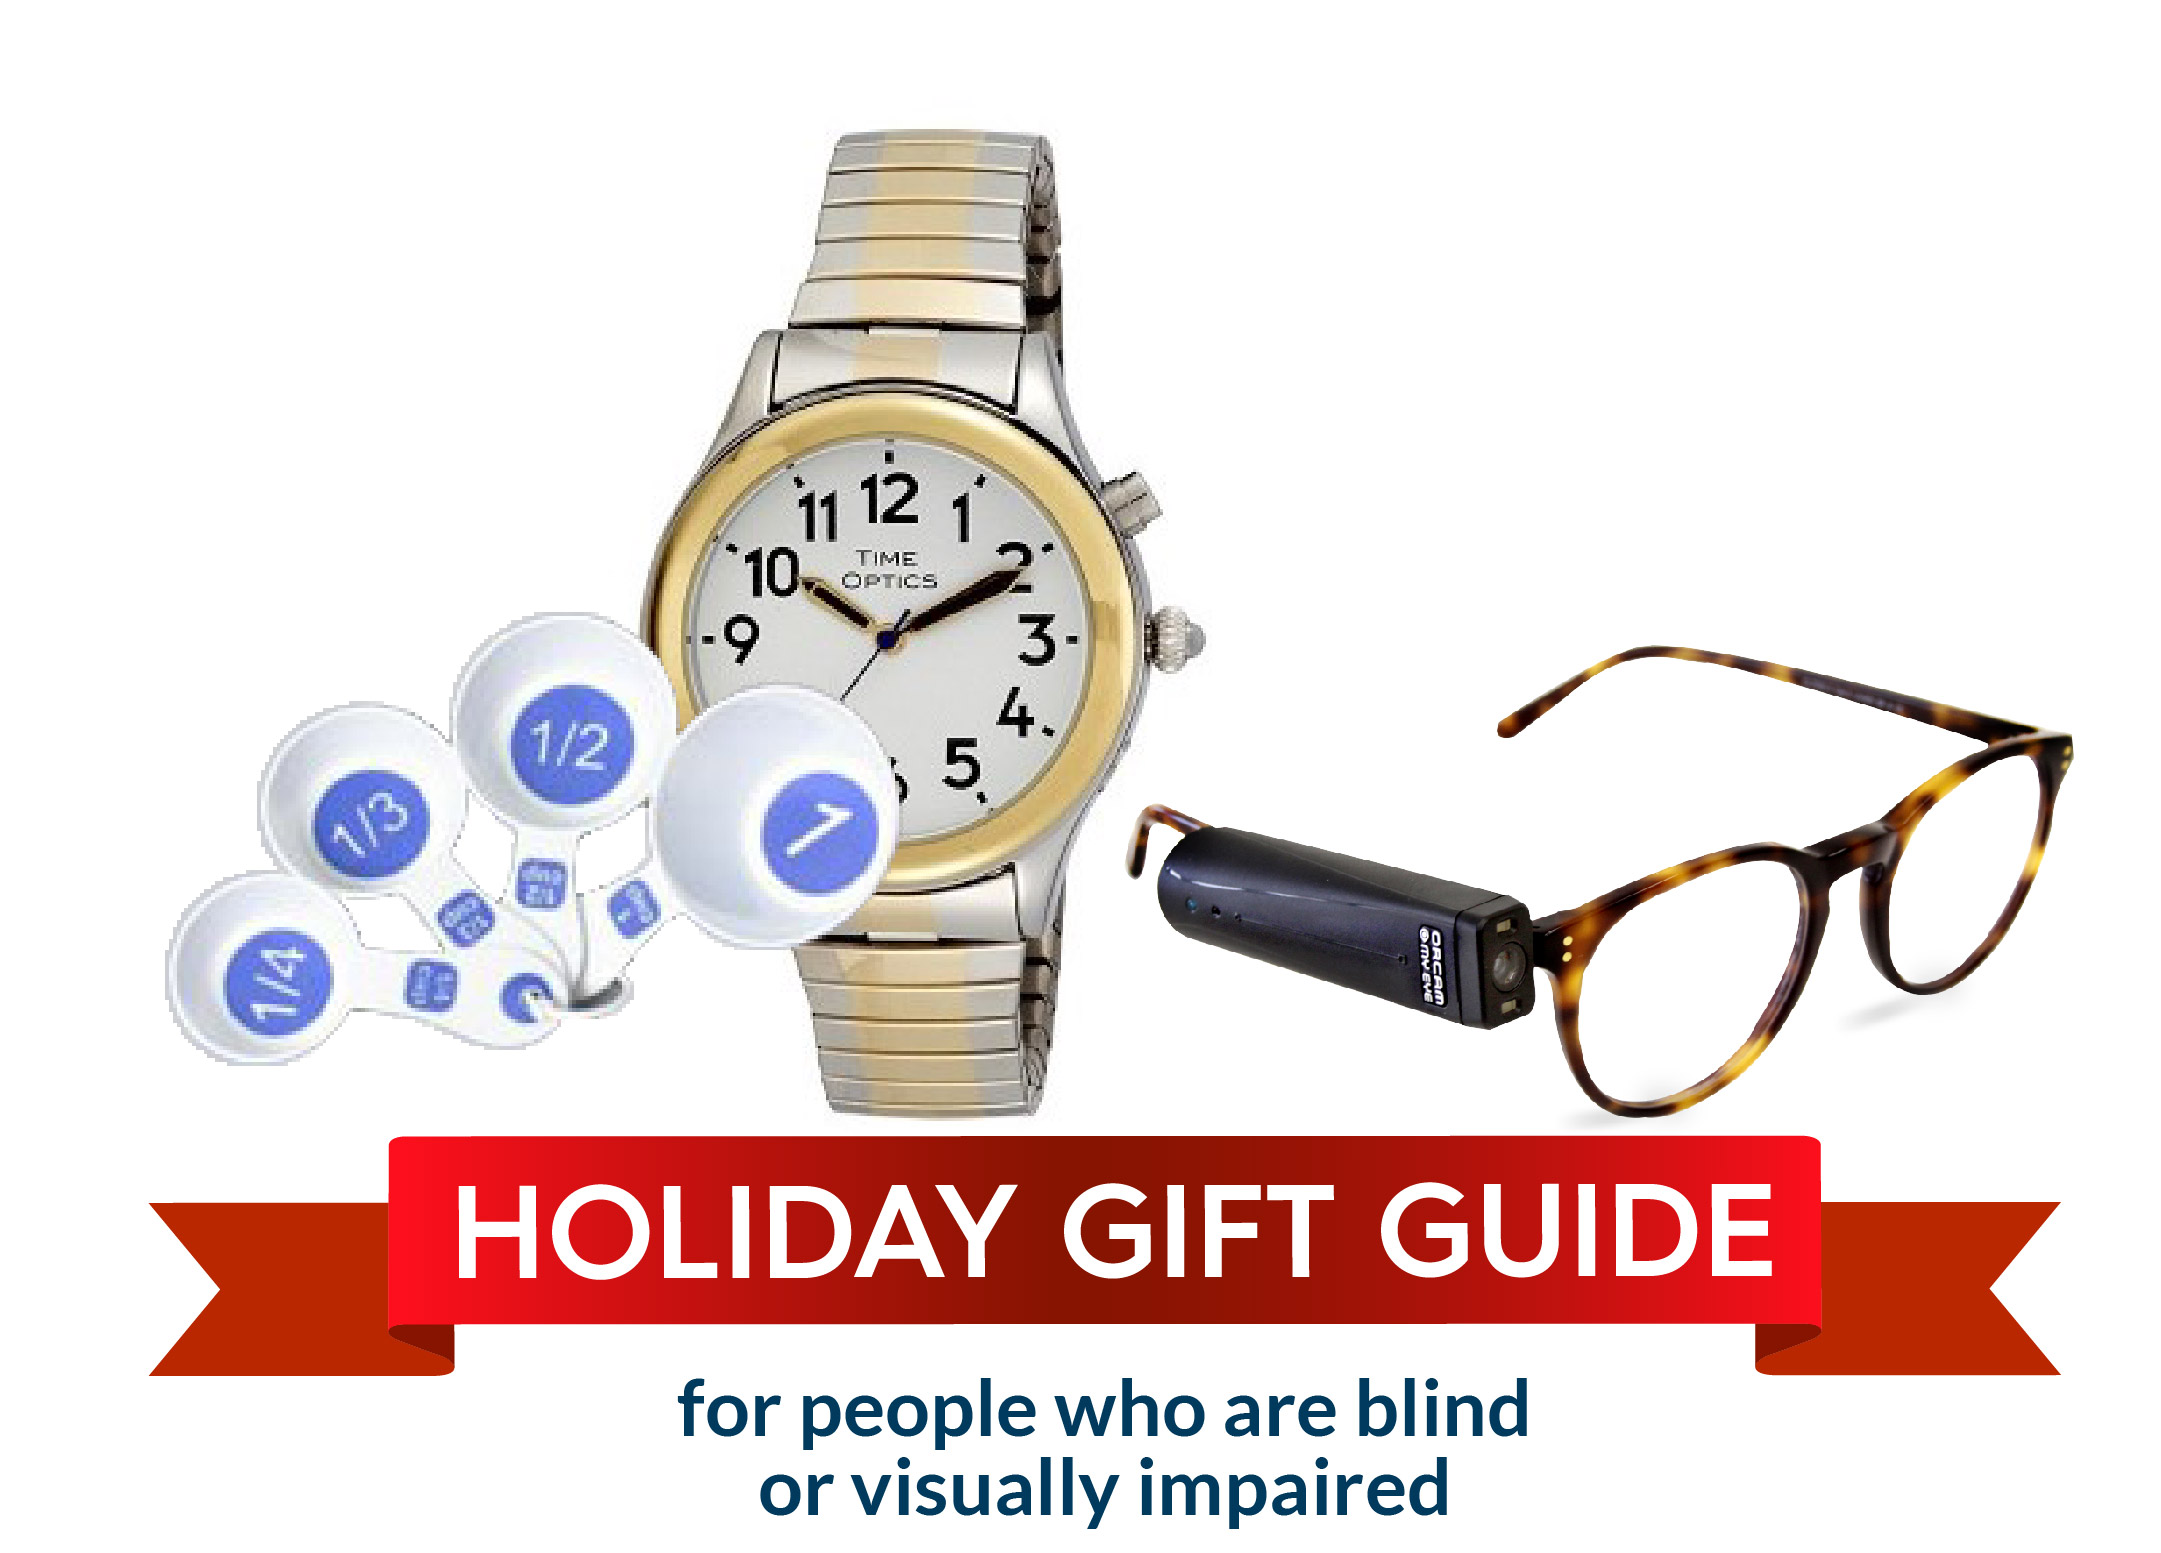 Holiday gift guide for people who are blind or visually impaired: measuring cups, optic watch, orcam device on glasses